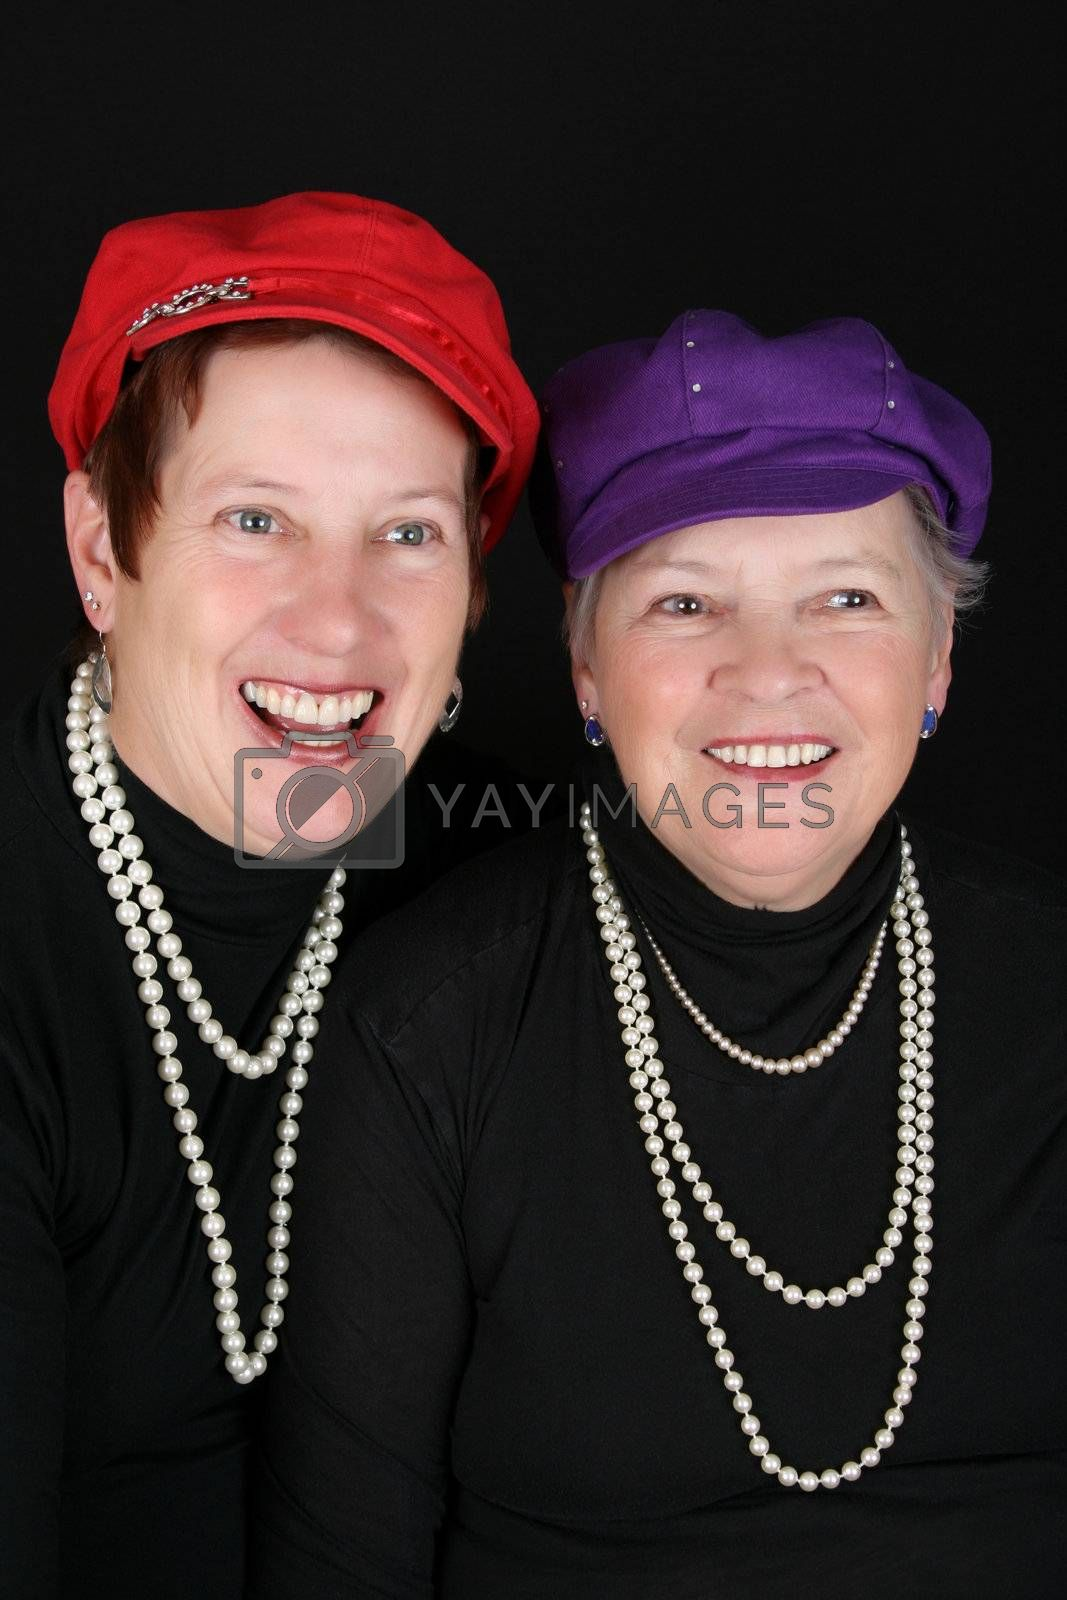 Adult mother and daughter wearing red and purple hats